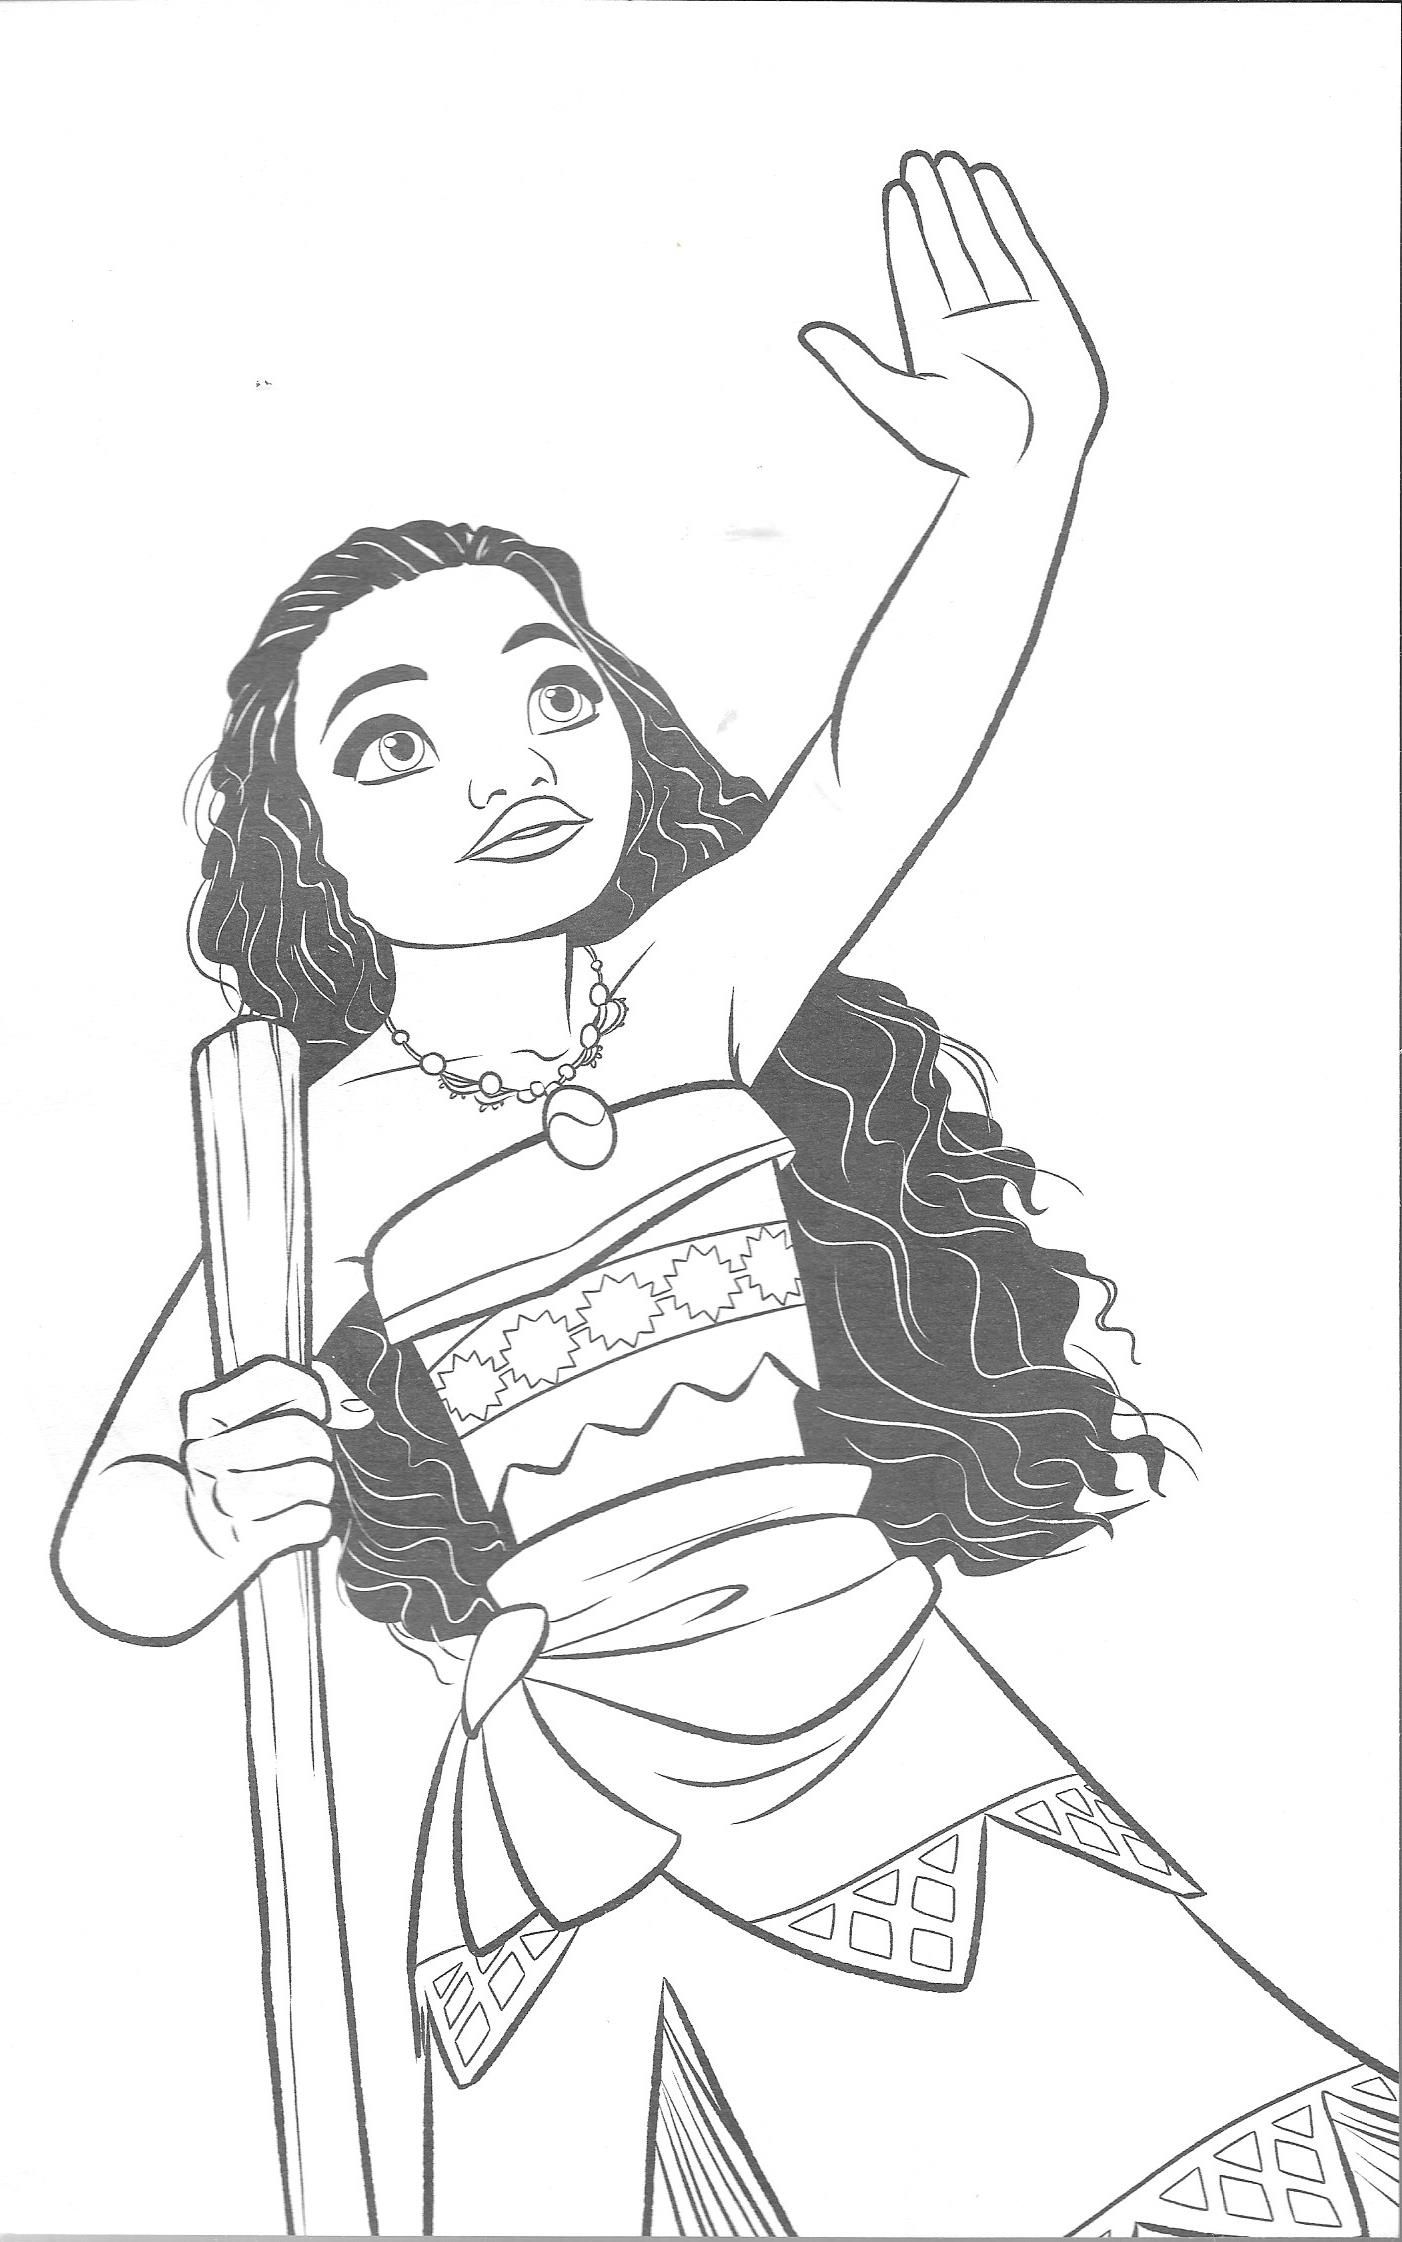 coloring pages for girls moana moana coloring pages coloring home moana pages girls coloring for